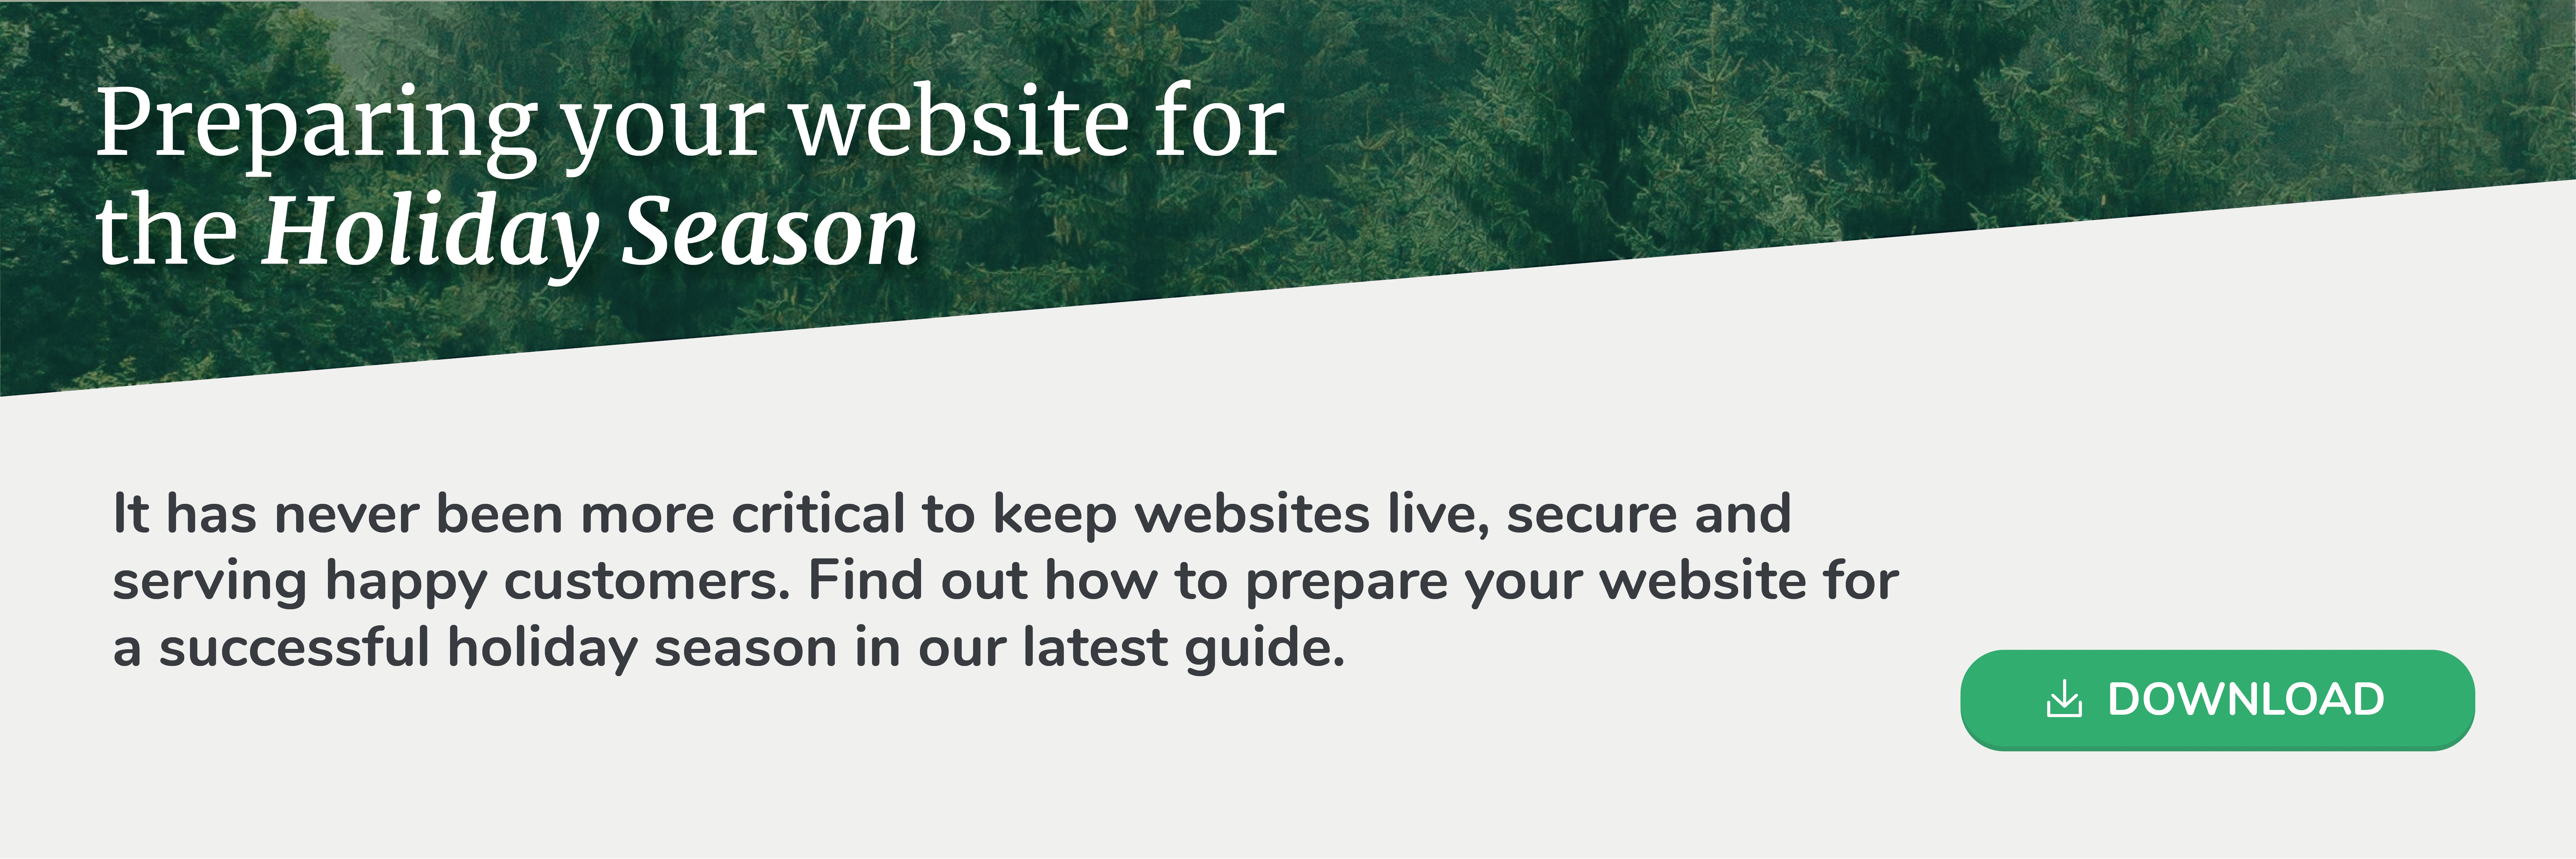 Black Friday, Cyber Monday, and Boxing Day are crucial events in the e-commerce calendar. It has never been more critical to keep websites live, secure and serving happy customers. Find out how to prepare your website for a successful holiday season in our latest guide.